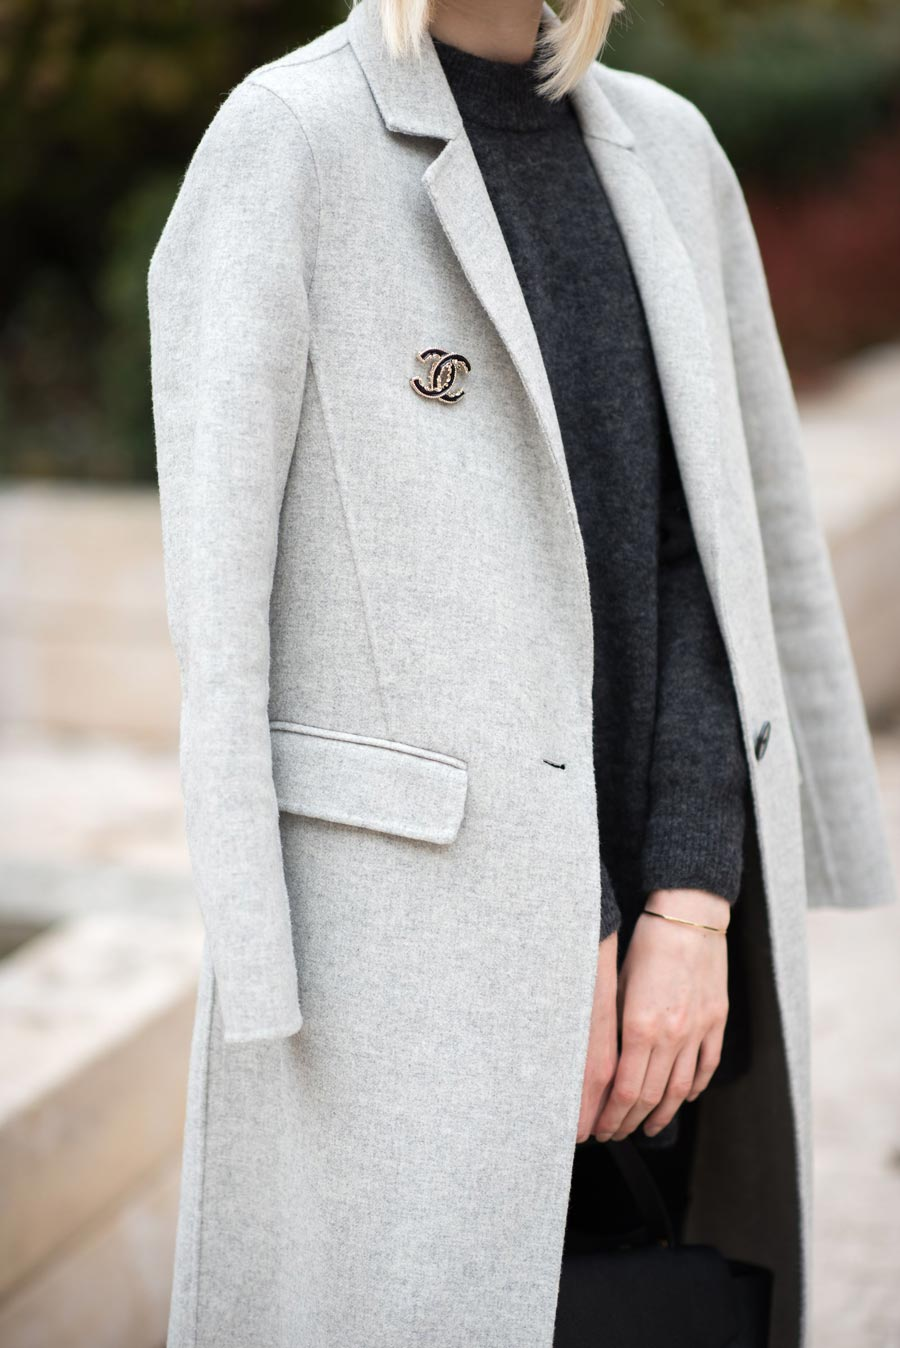 How To Wear A Brooch This Fall 2020